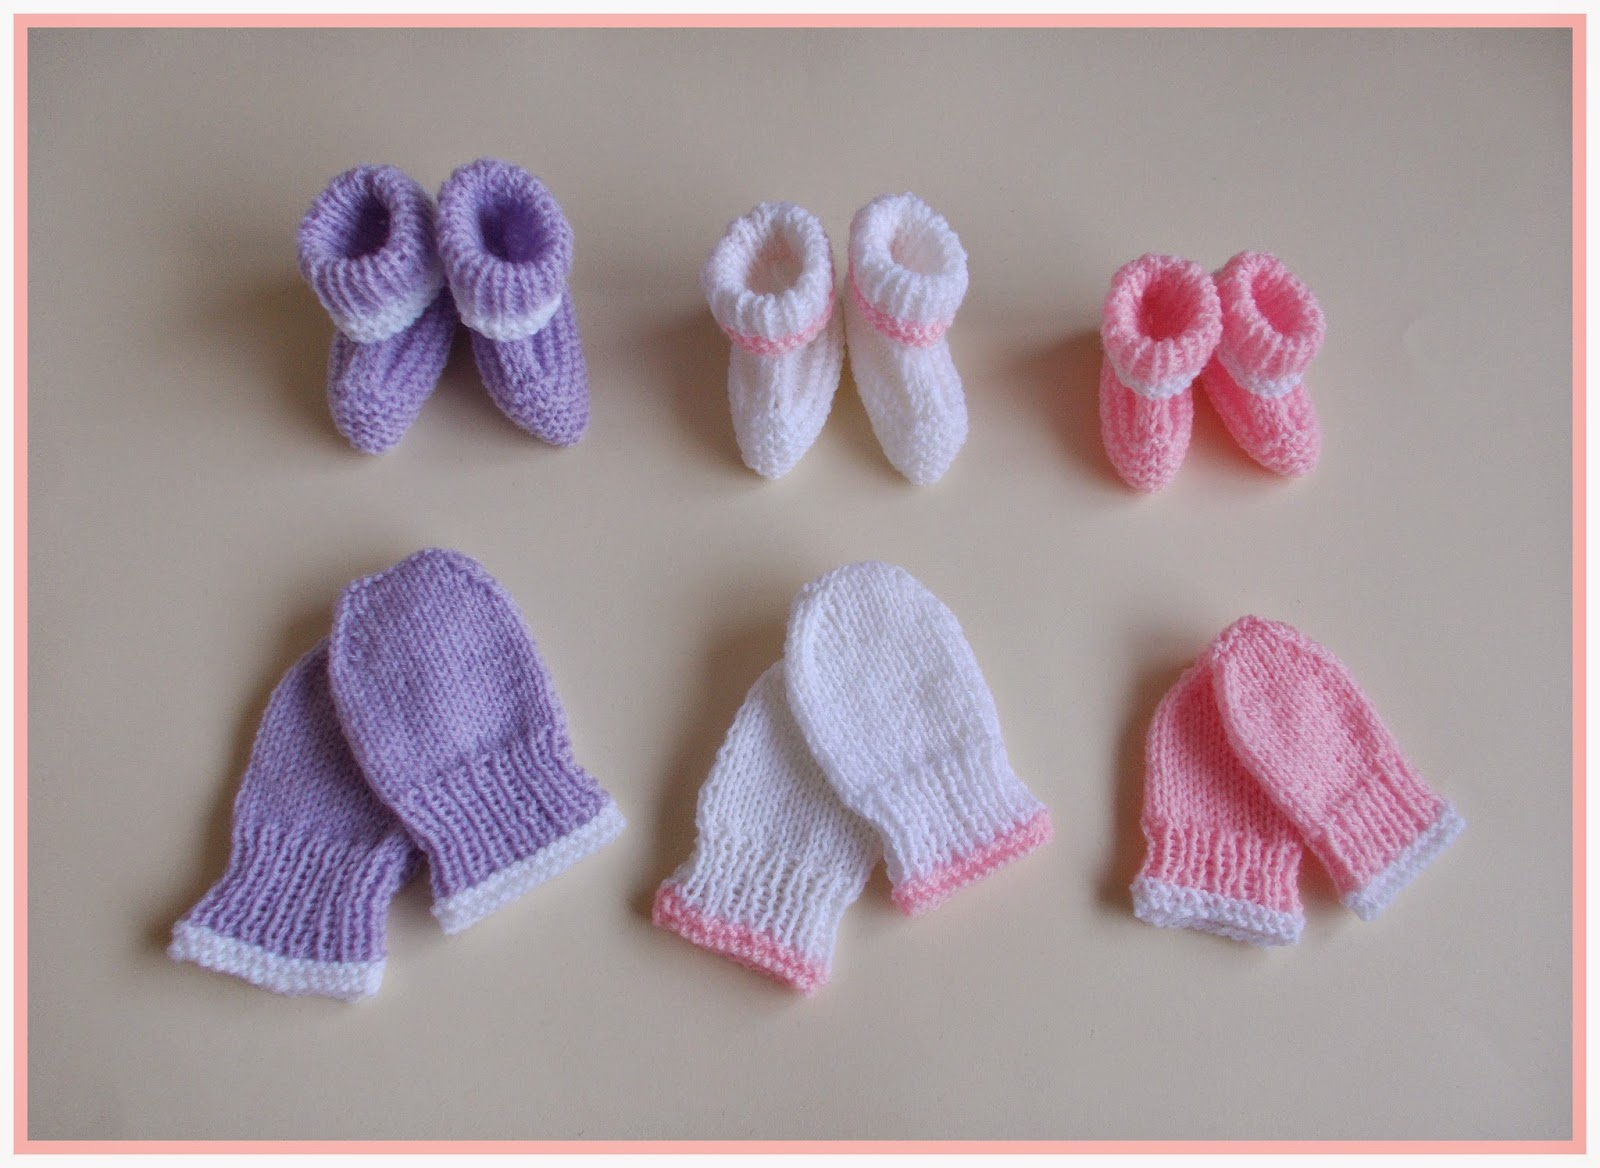 Knitting Patterns For Mittens For Premature Babies : mariannas lazy daisy days: Premature & Newborn Baby Hat ...